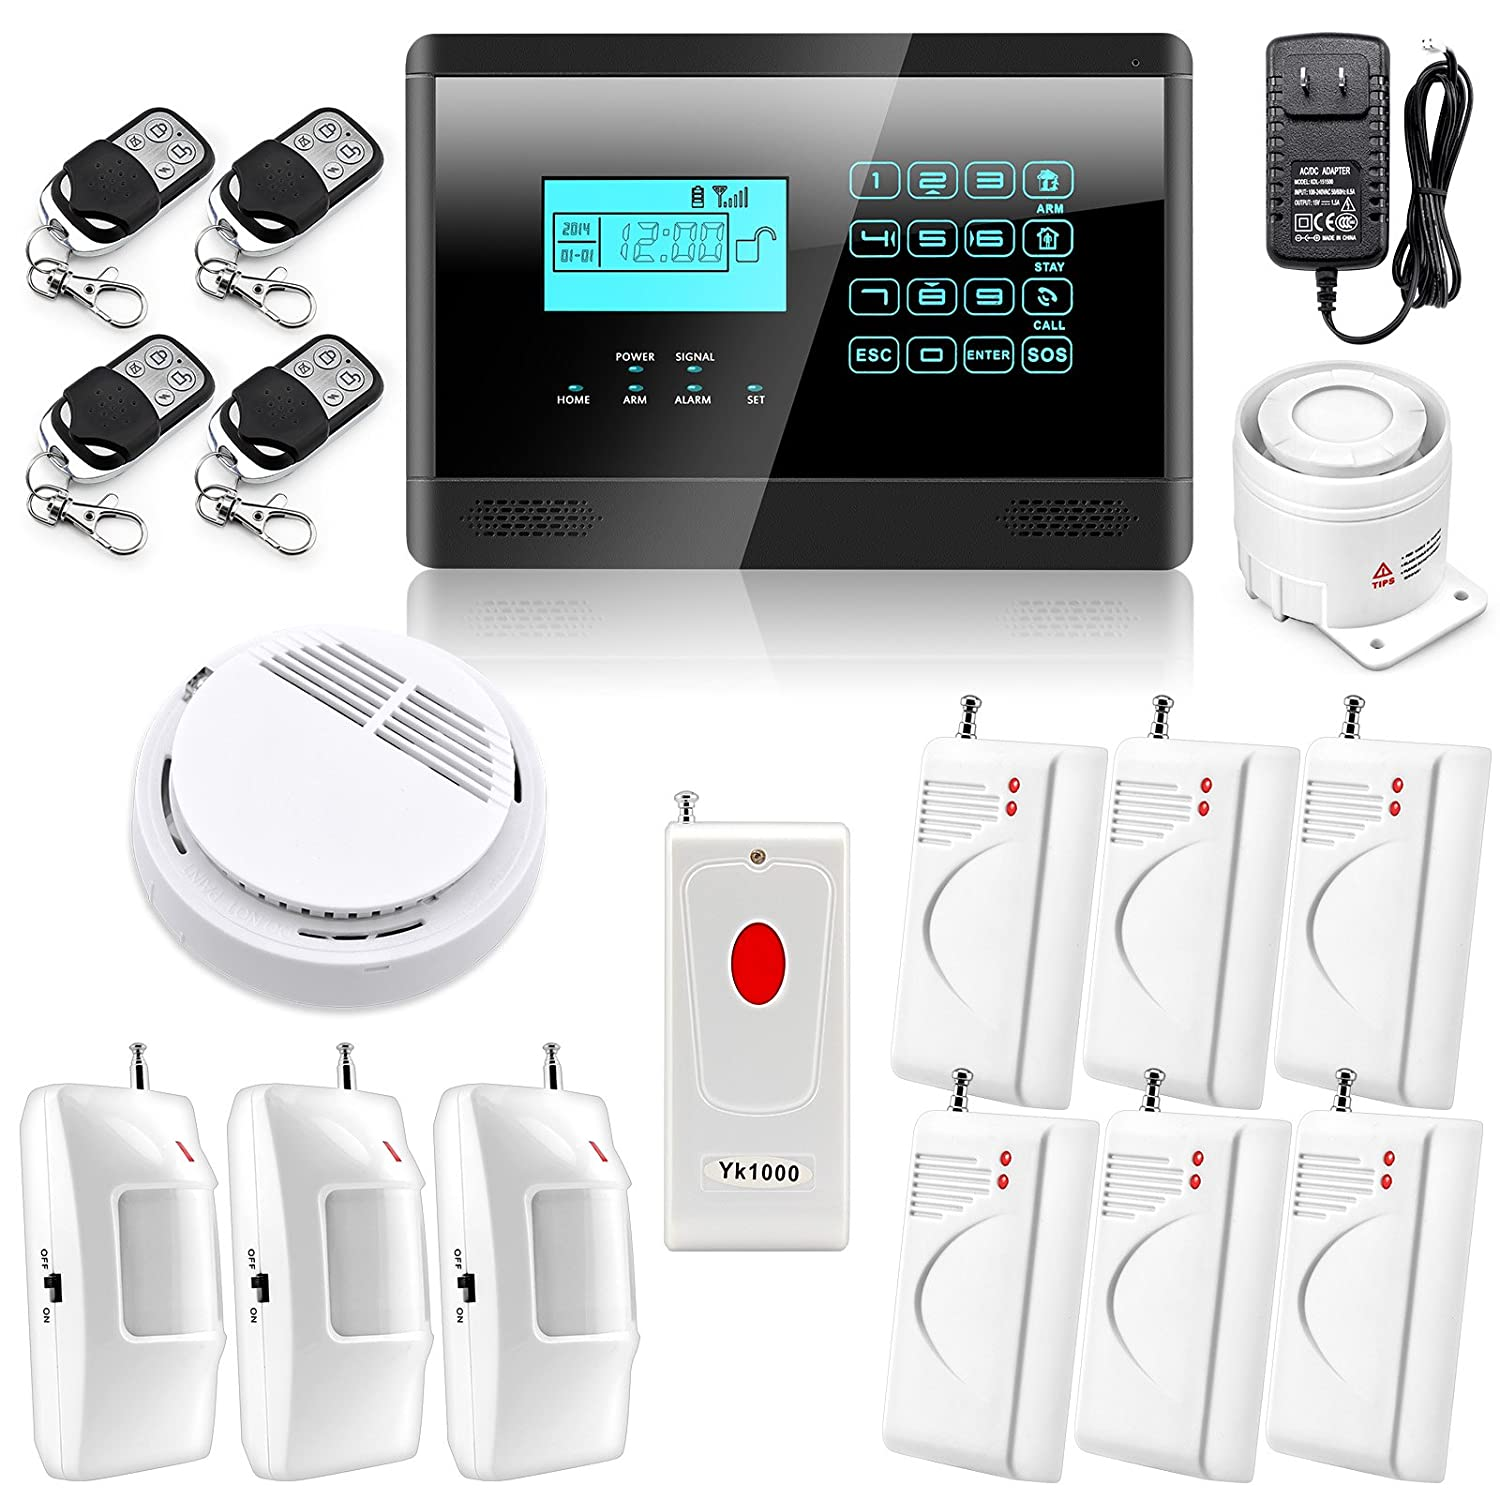 The 50 best smart home security systems top home automation this complete tamper proof home security system lets you set up to 99 wireless monitoring zones so you know whats going on anywhere in your home solutioingenieria Images